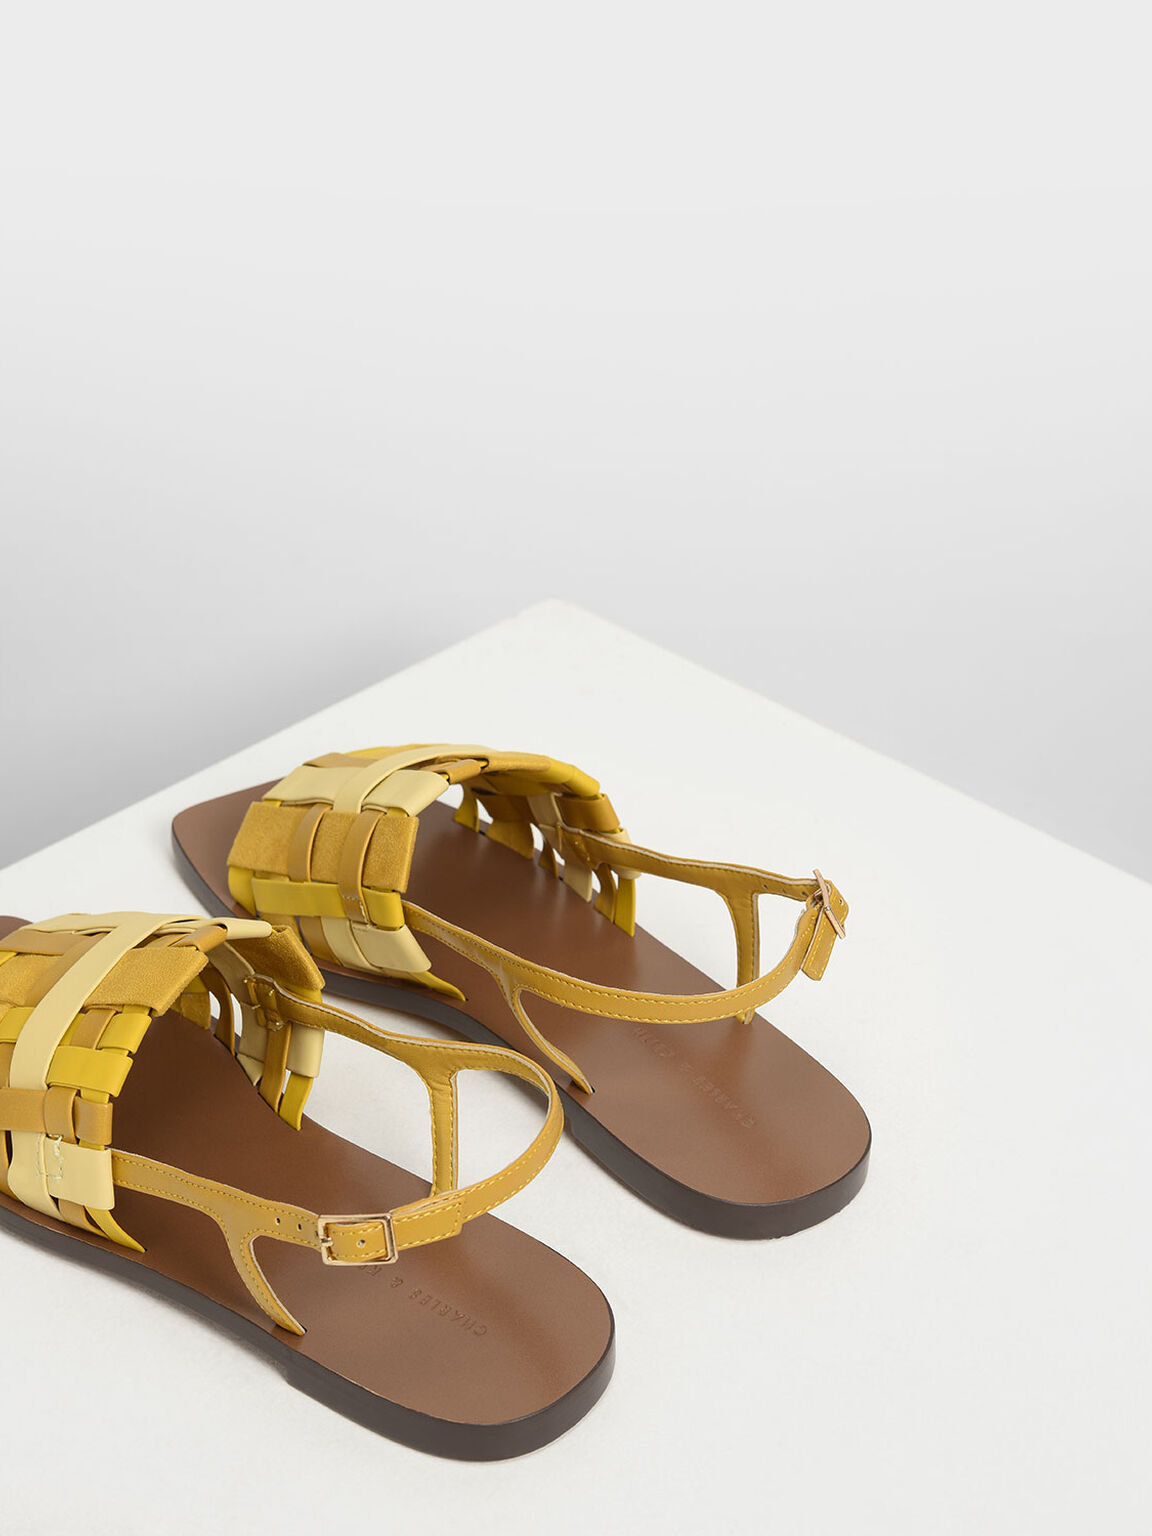 Woven Slingback Sandals, Yellow, hi-res